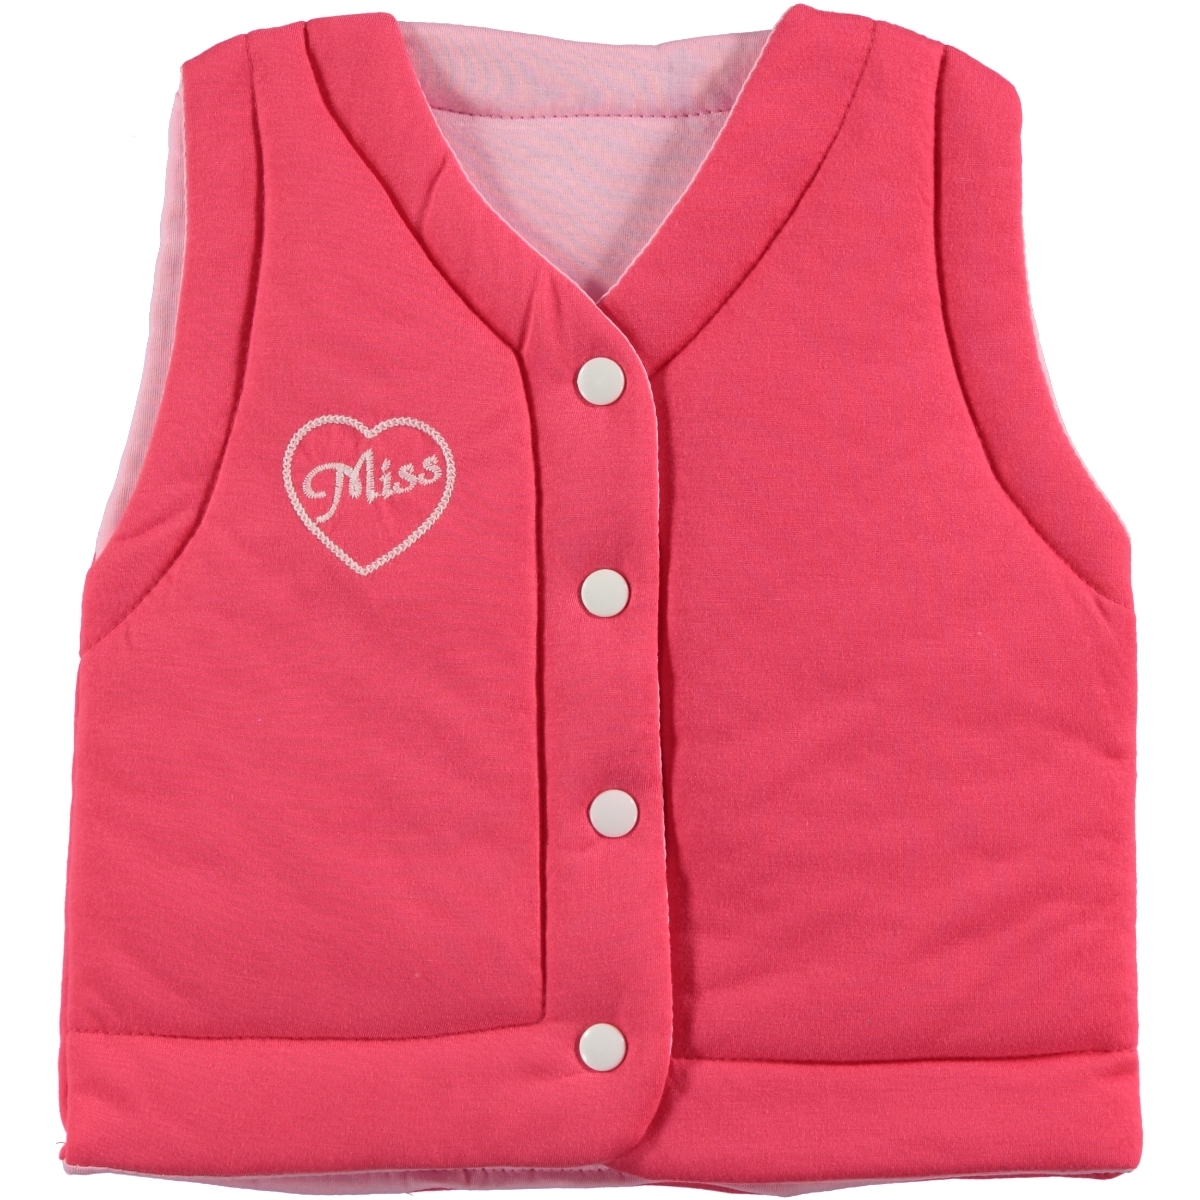 Civil Girls Girl Double-Sided Vest 2-5 Years ... Tongue In Cheek